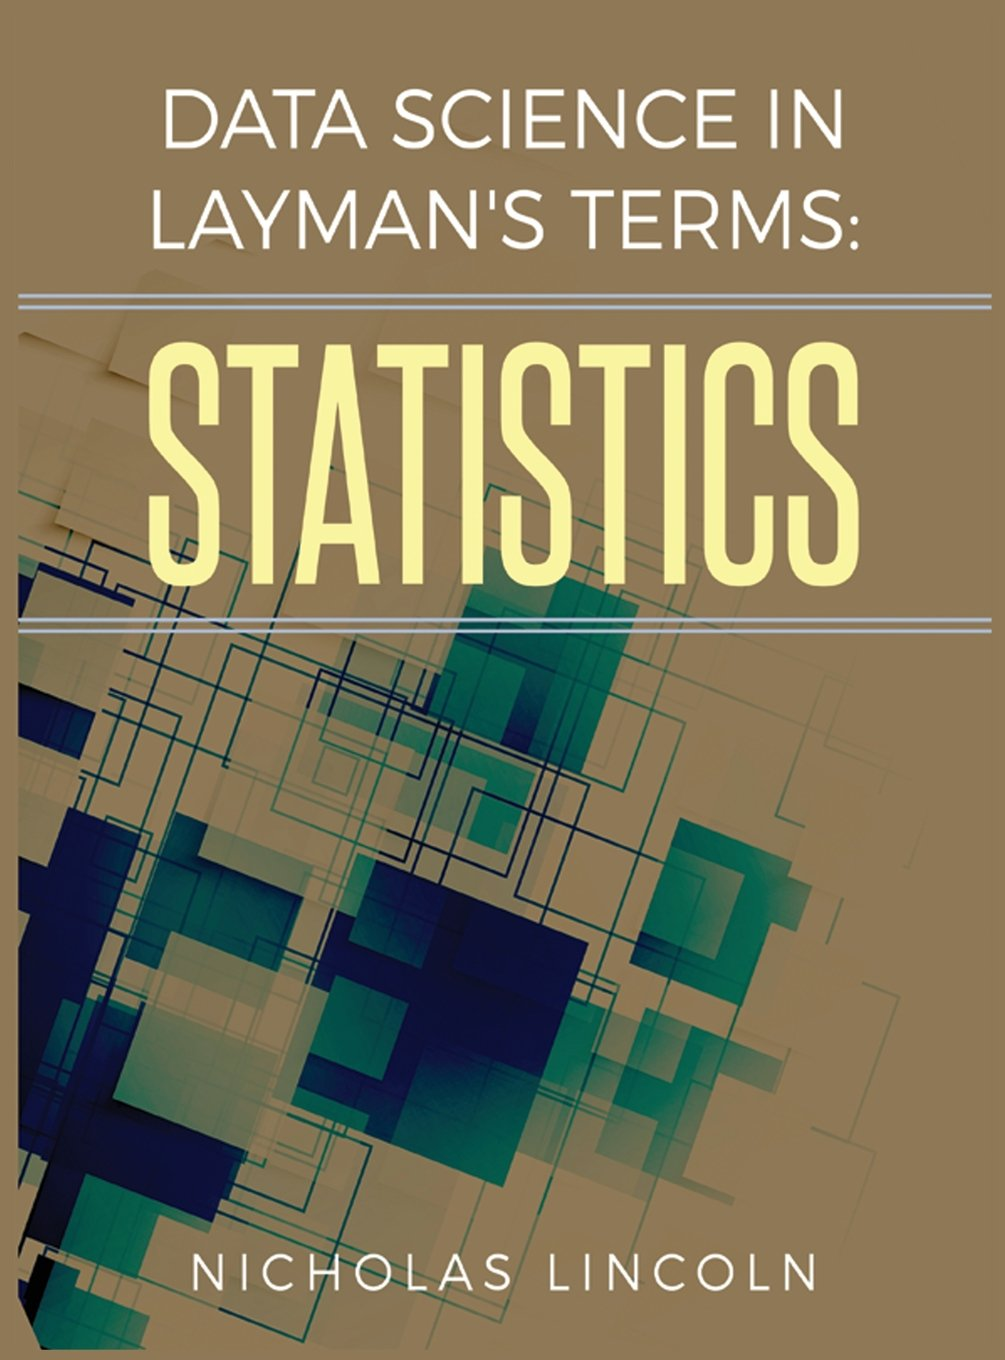 Data Science in Layman's Terms: Statistics: Nicholas Lincoln